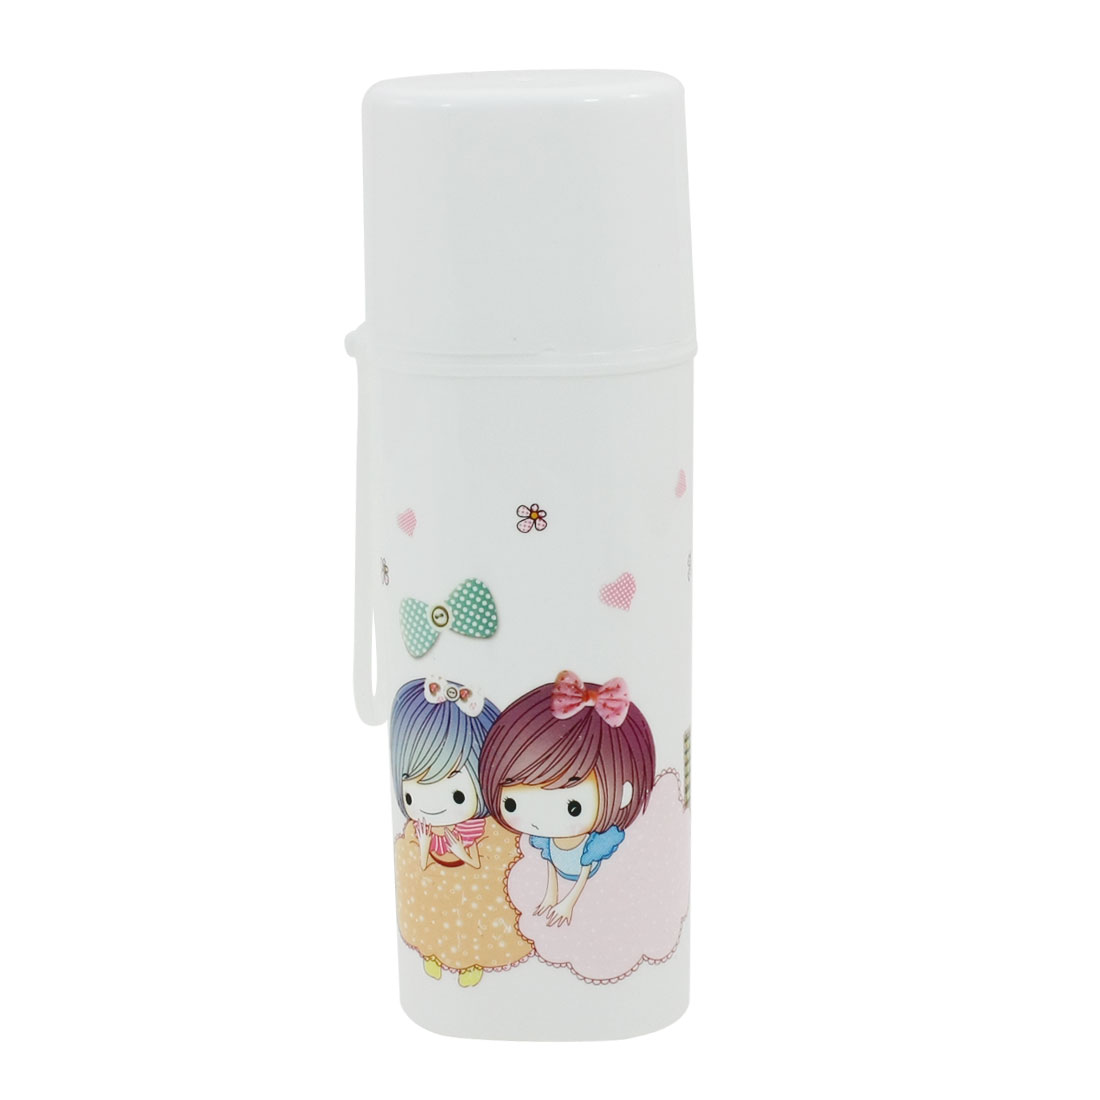 Camping Hiking Toothbrush Toothpaste Capped Holder Bottle Case White